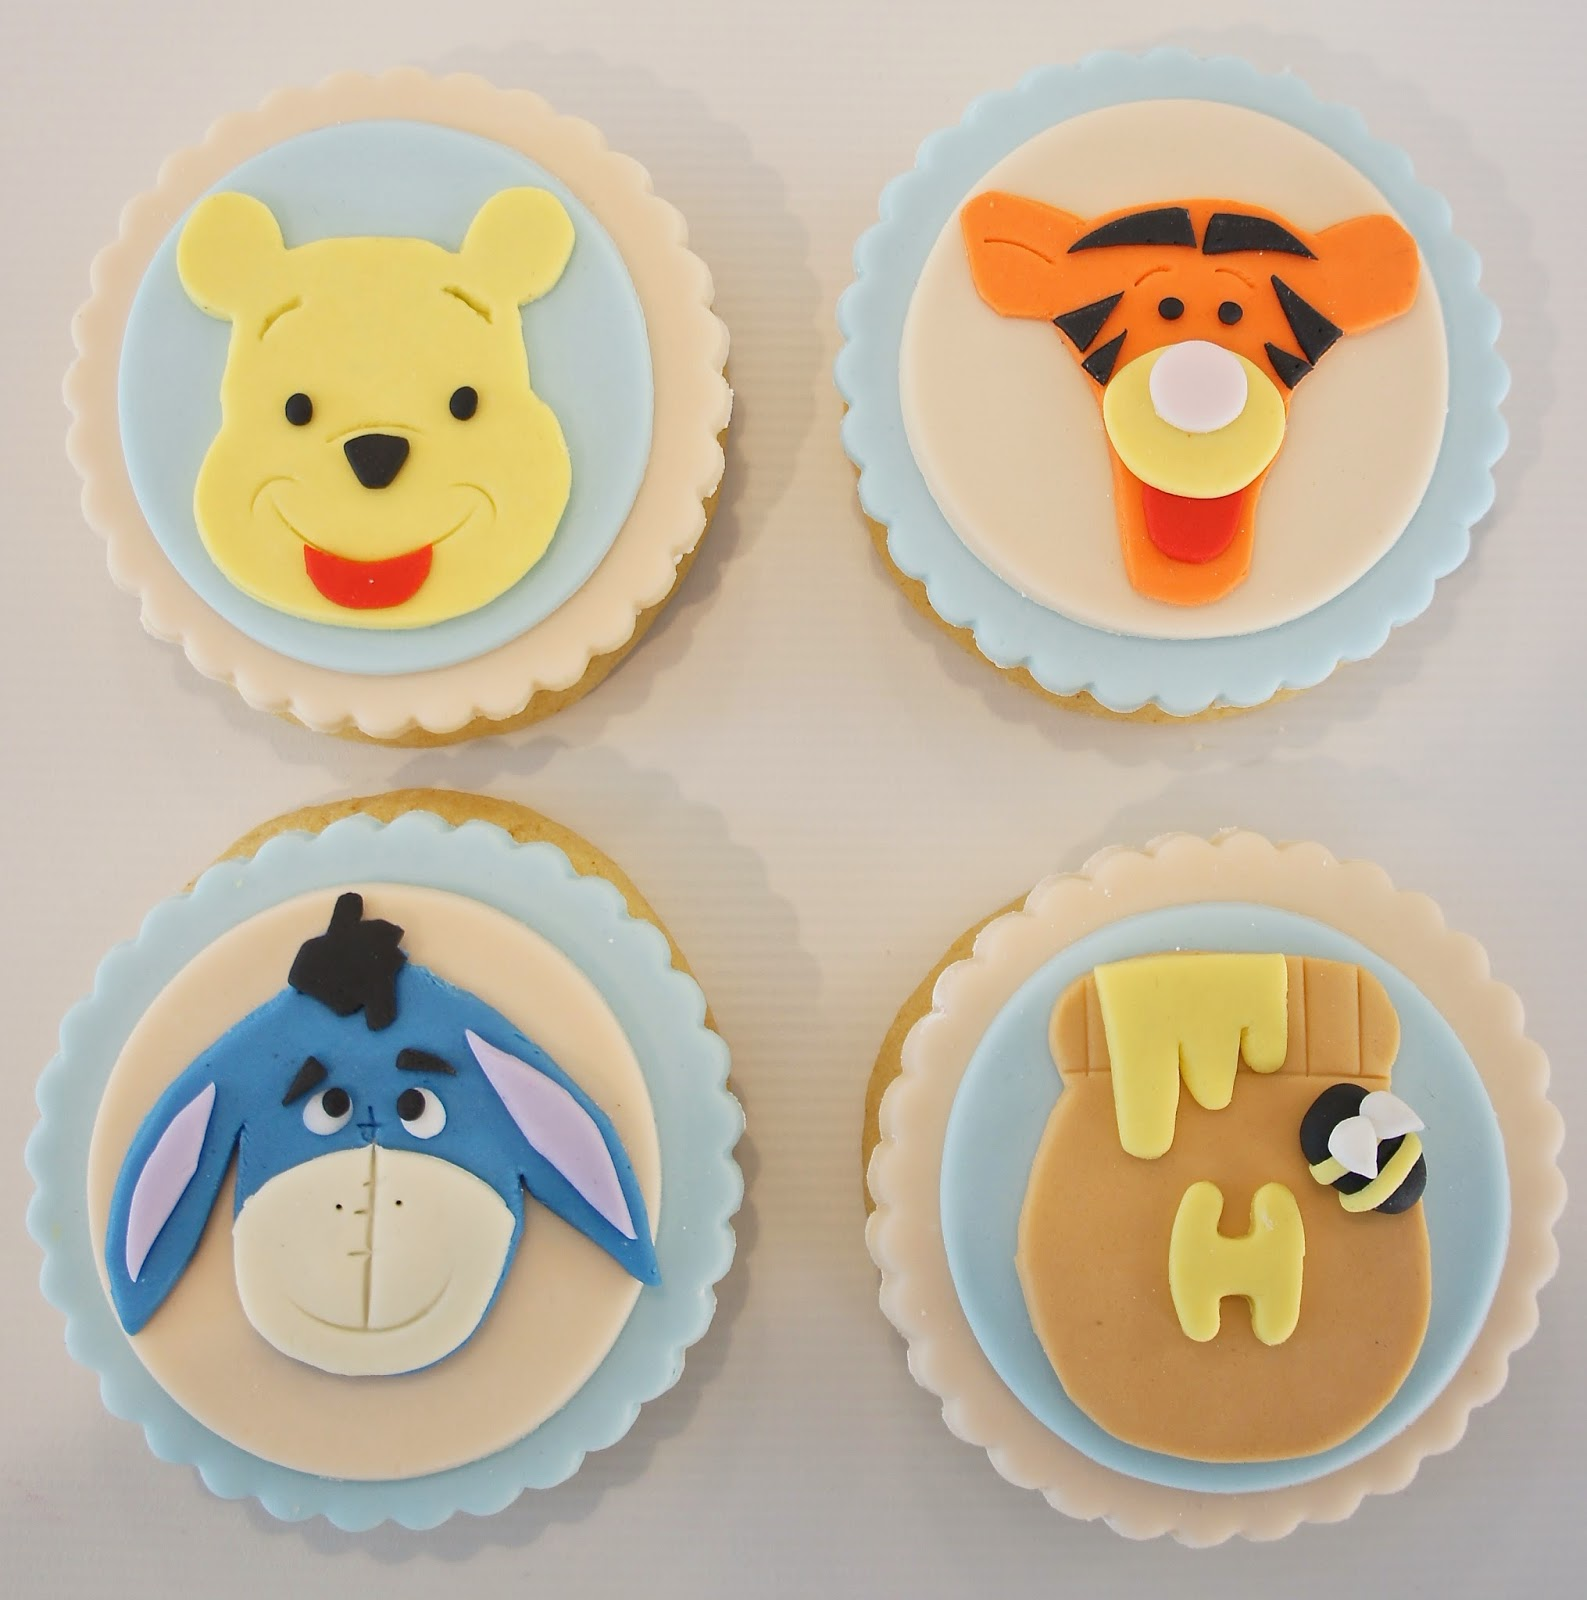 Fondant Cakes and Cookies!